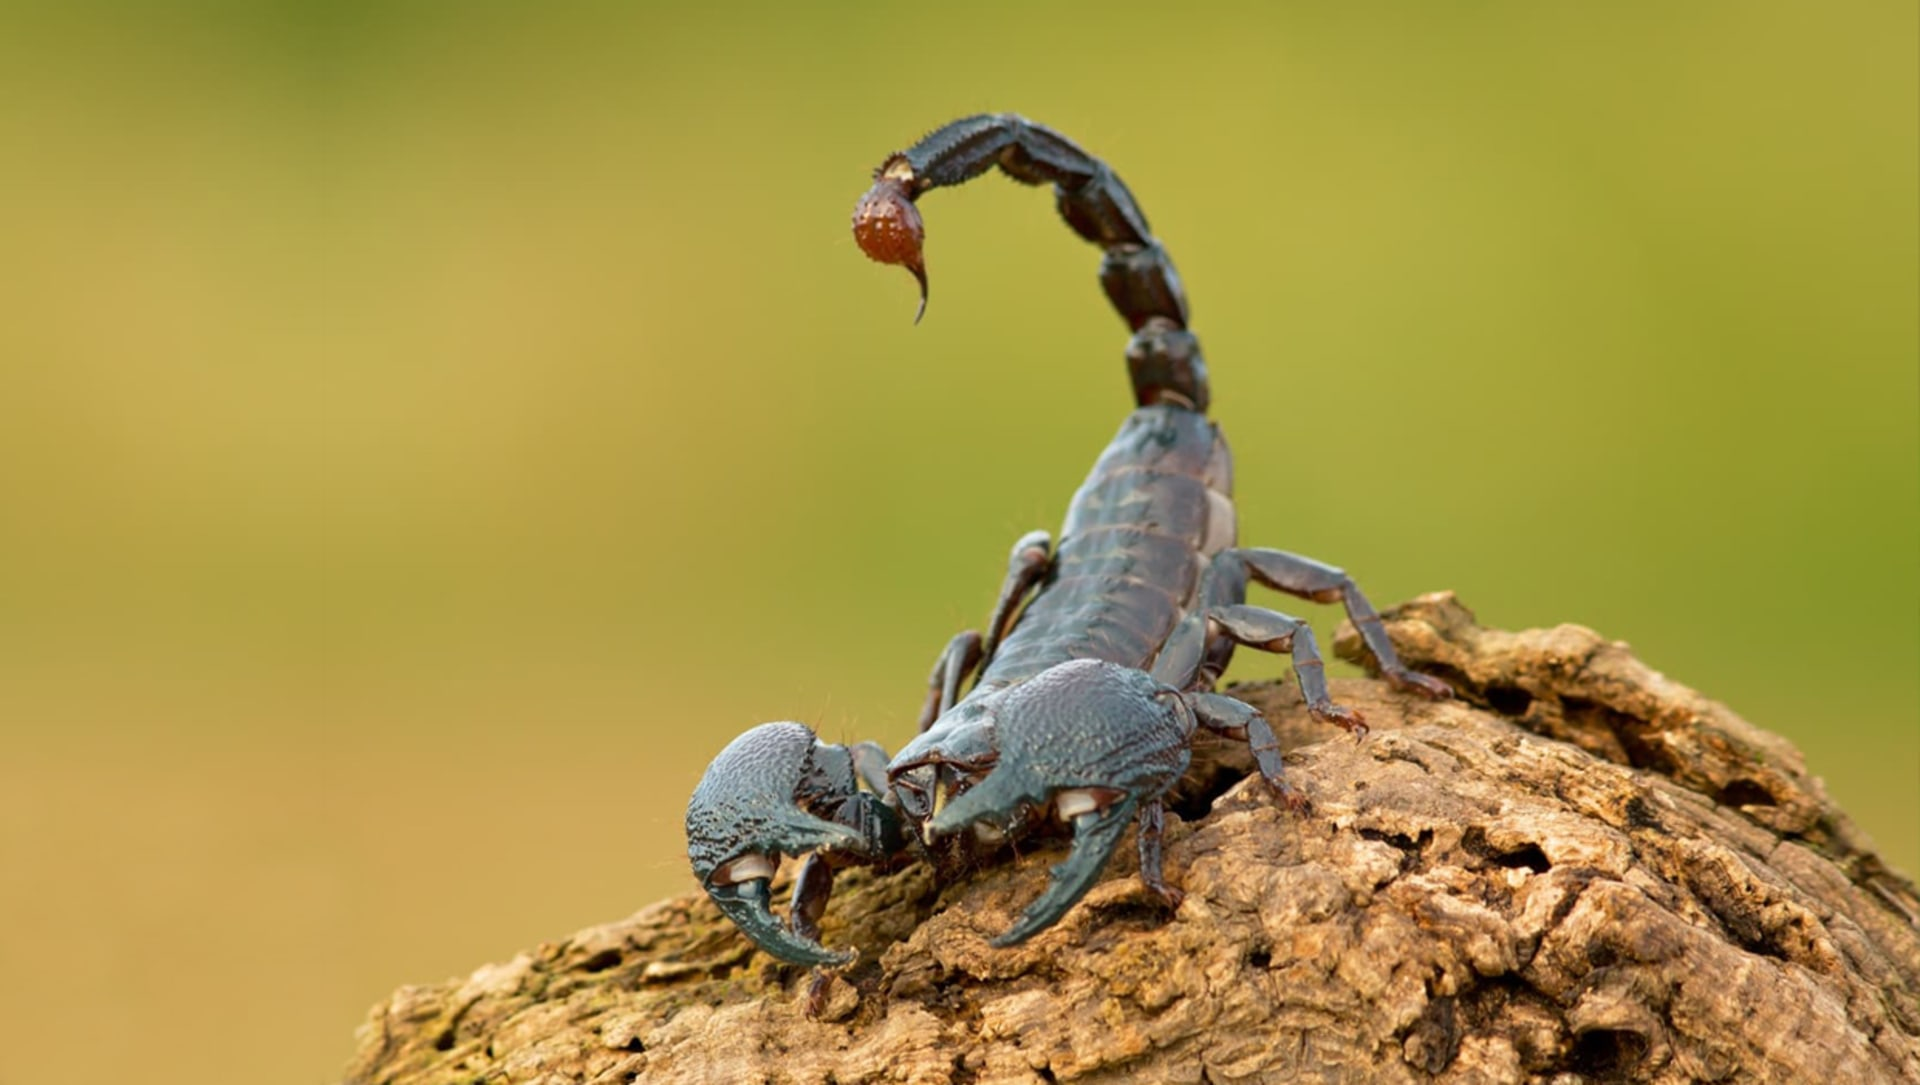 The Curious Case of the Scorpion in the Night-time